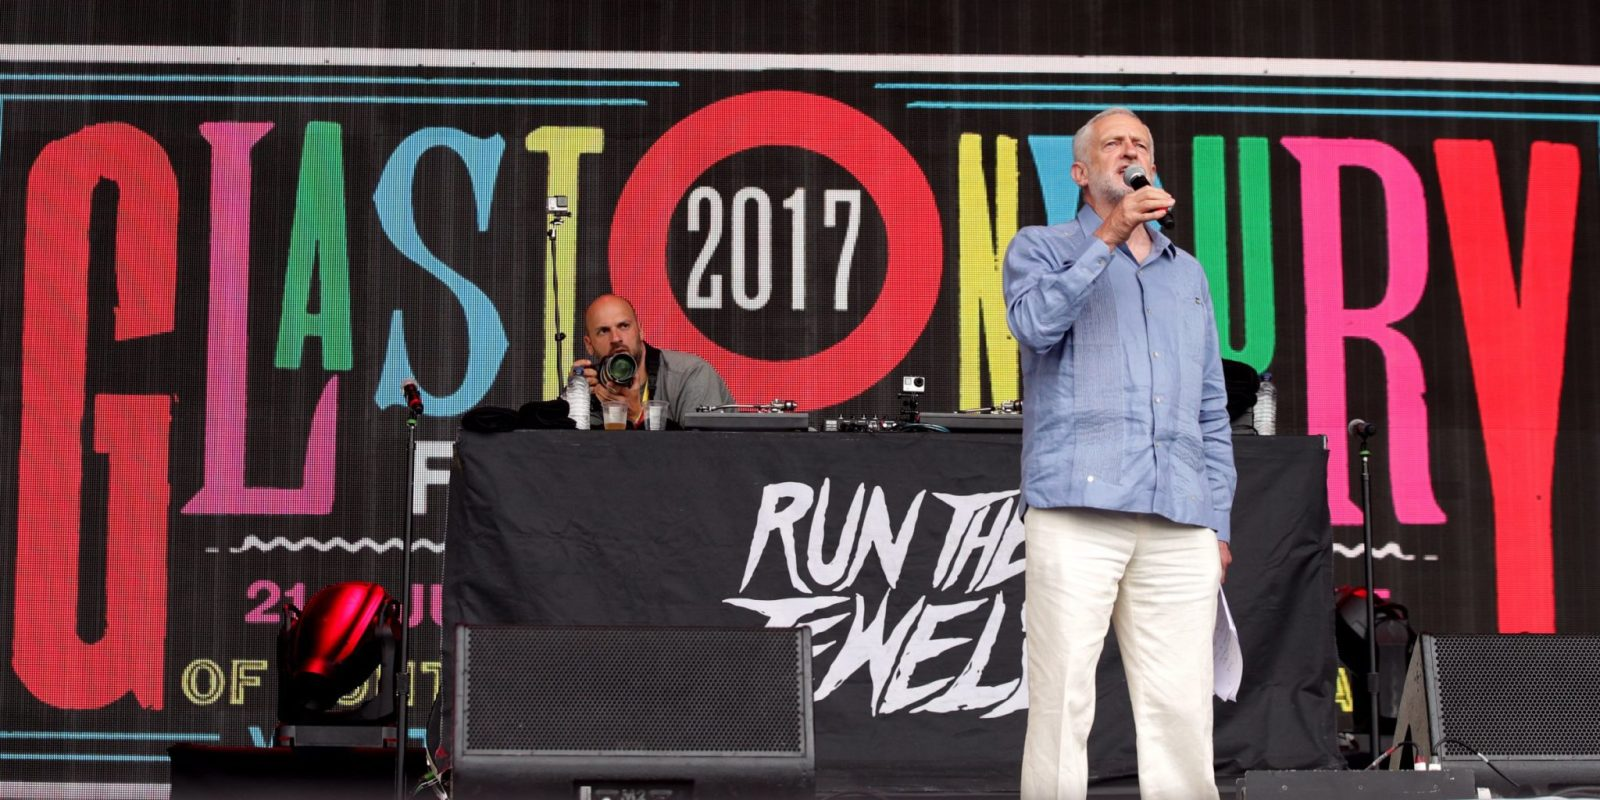 Jeremy-Corbyn-Glastonbury-2017-Young-Voters-Labour